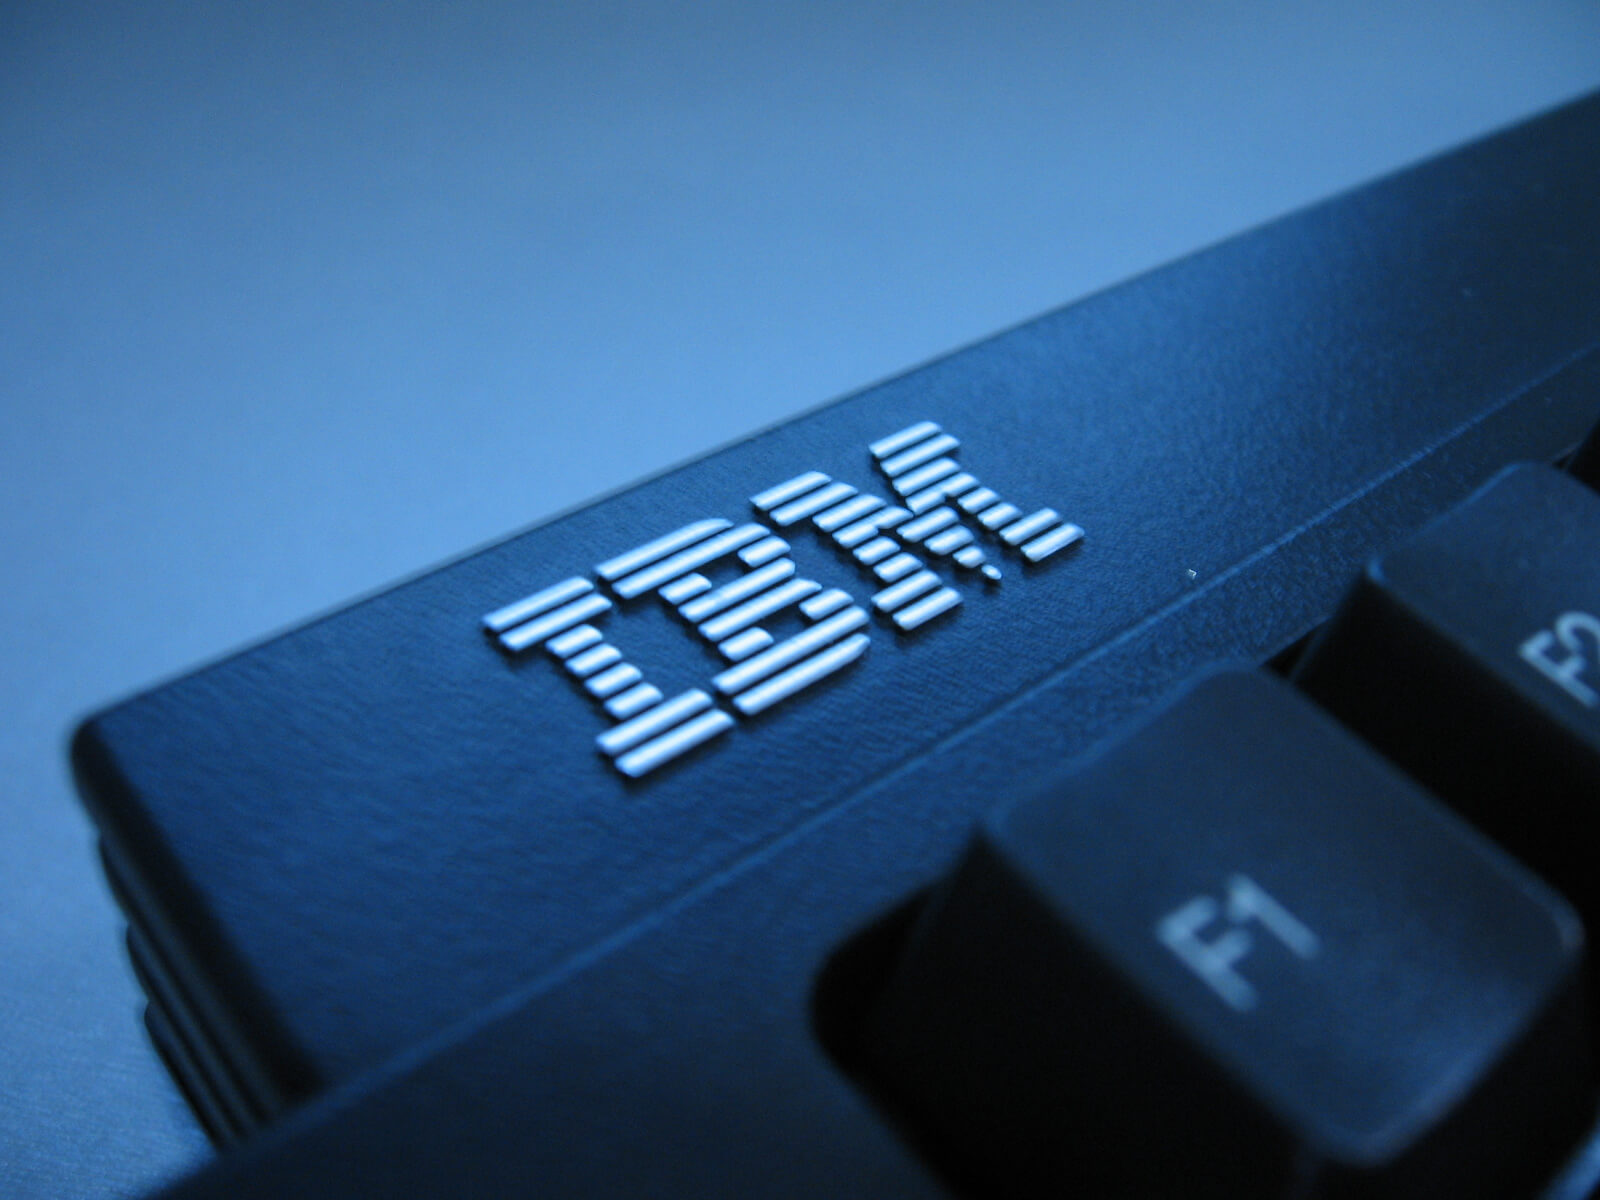 IBM Research achieves new milestone in deep learning performance